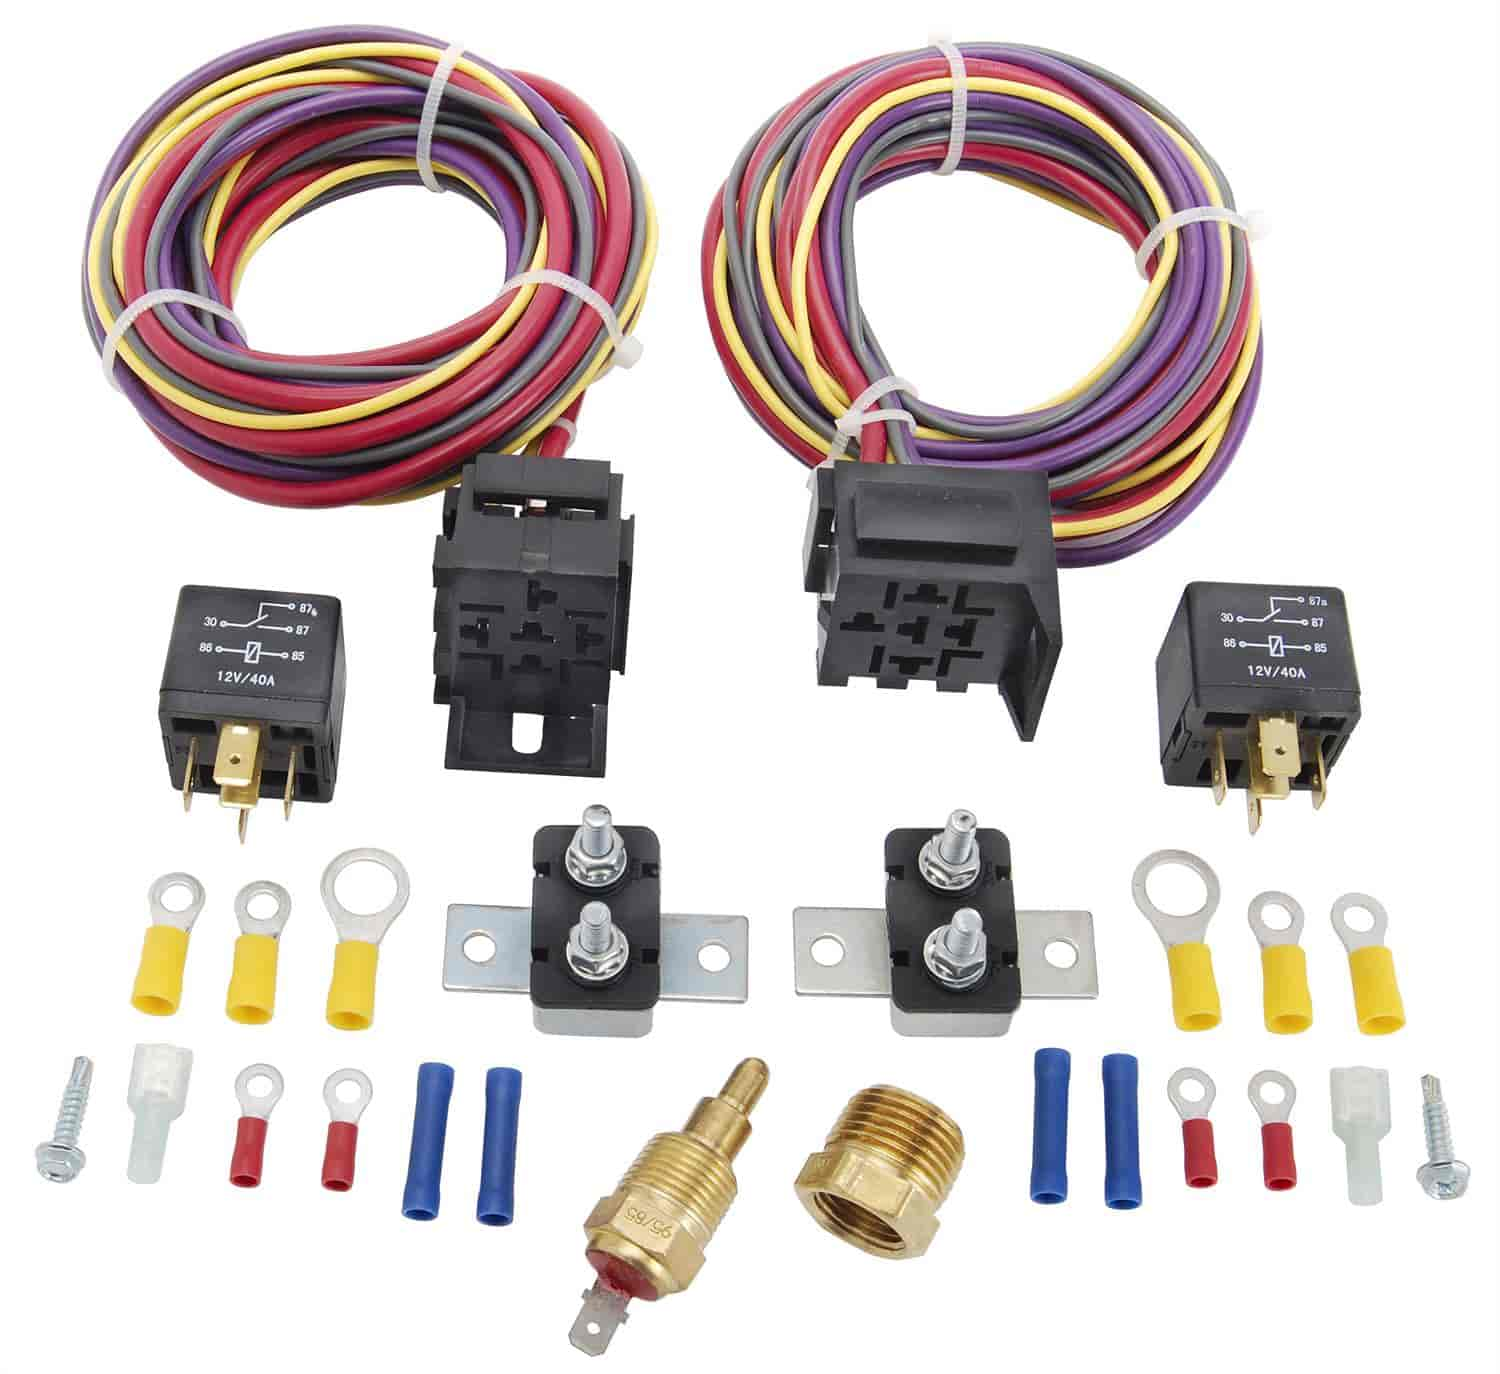 555 10571 jegs performance products 10571 dual fan wiring harness & relay VW Wiring Harness Kits at gsmportal.co